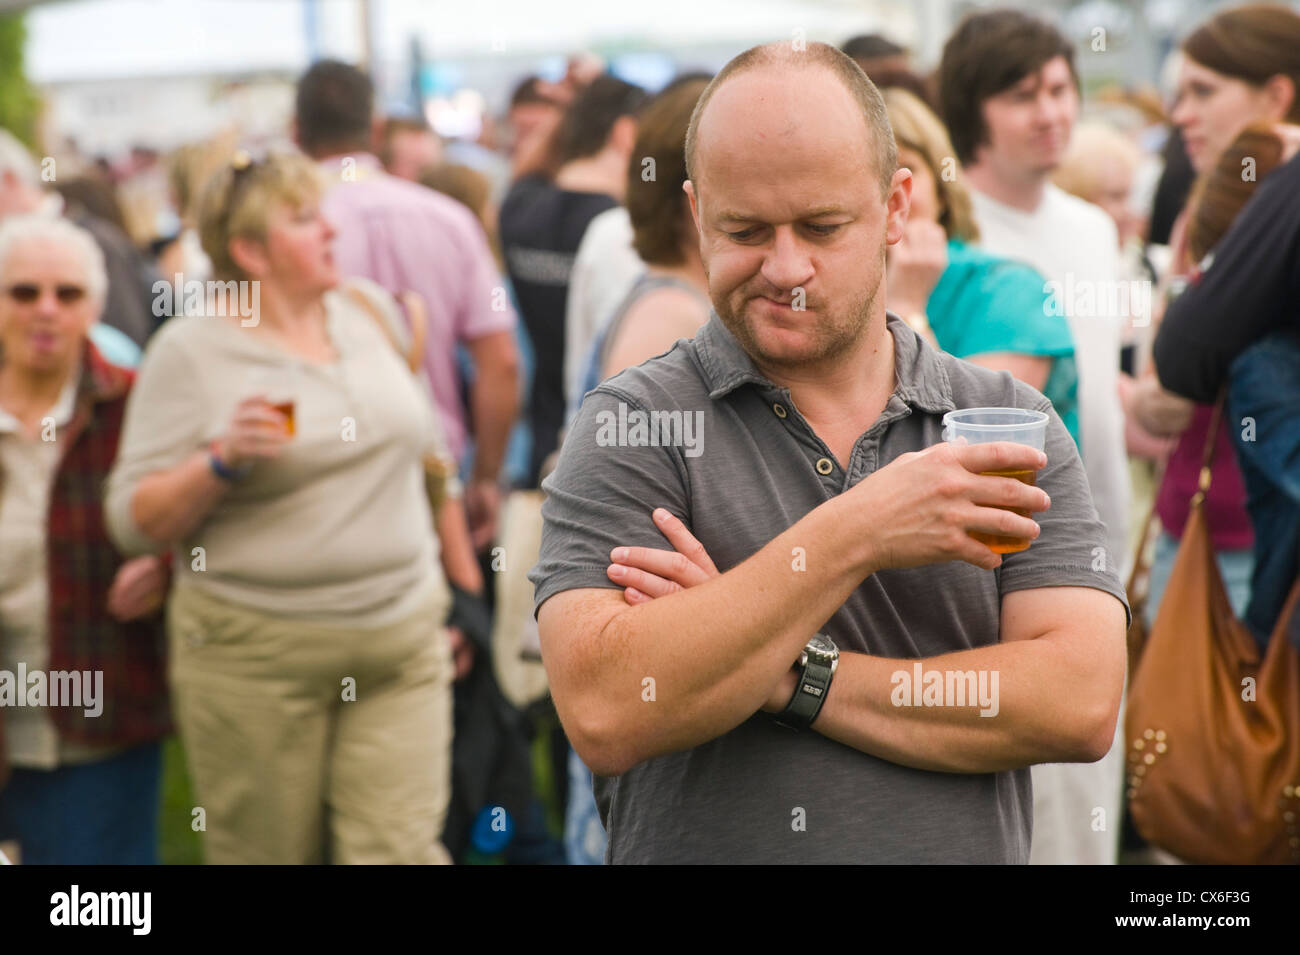 Man drinking beer in crowd at Ludlow Food Festival 2012 Ludlow Shropshire England UK - Stock Image